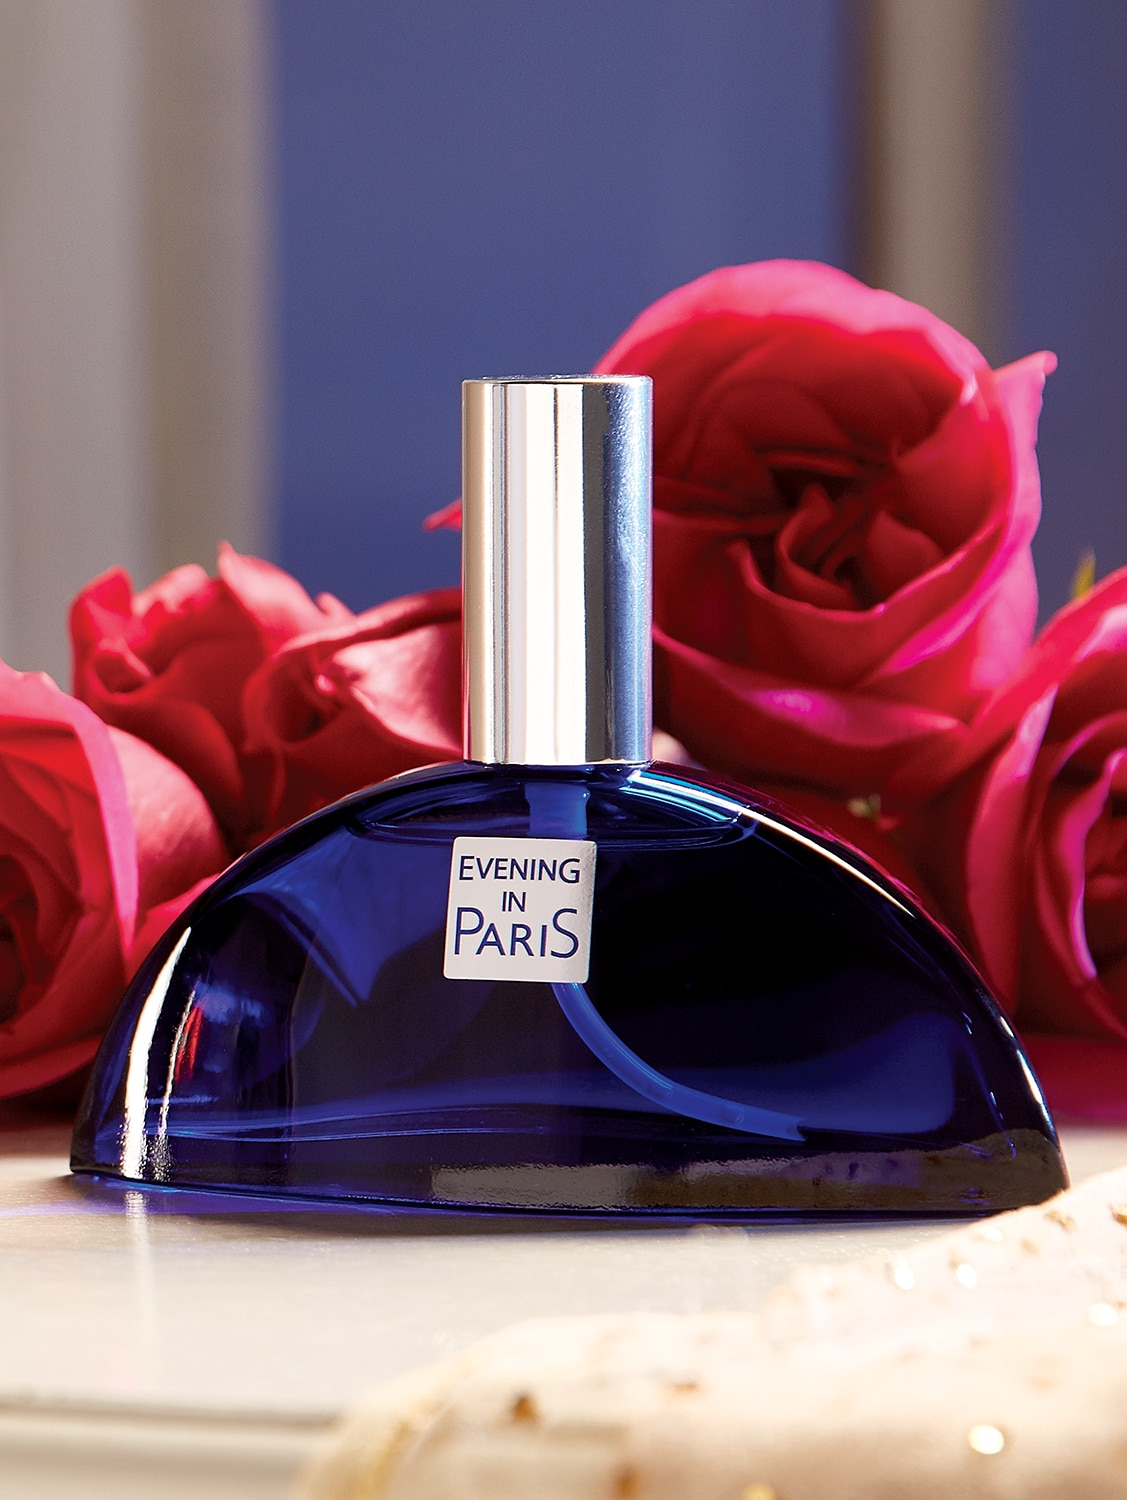 Evening in Paris Eau de Parfum